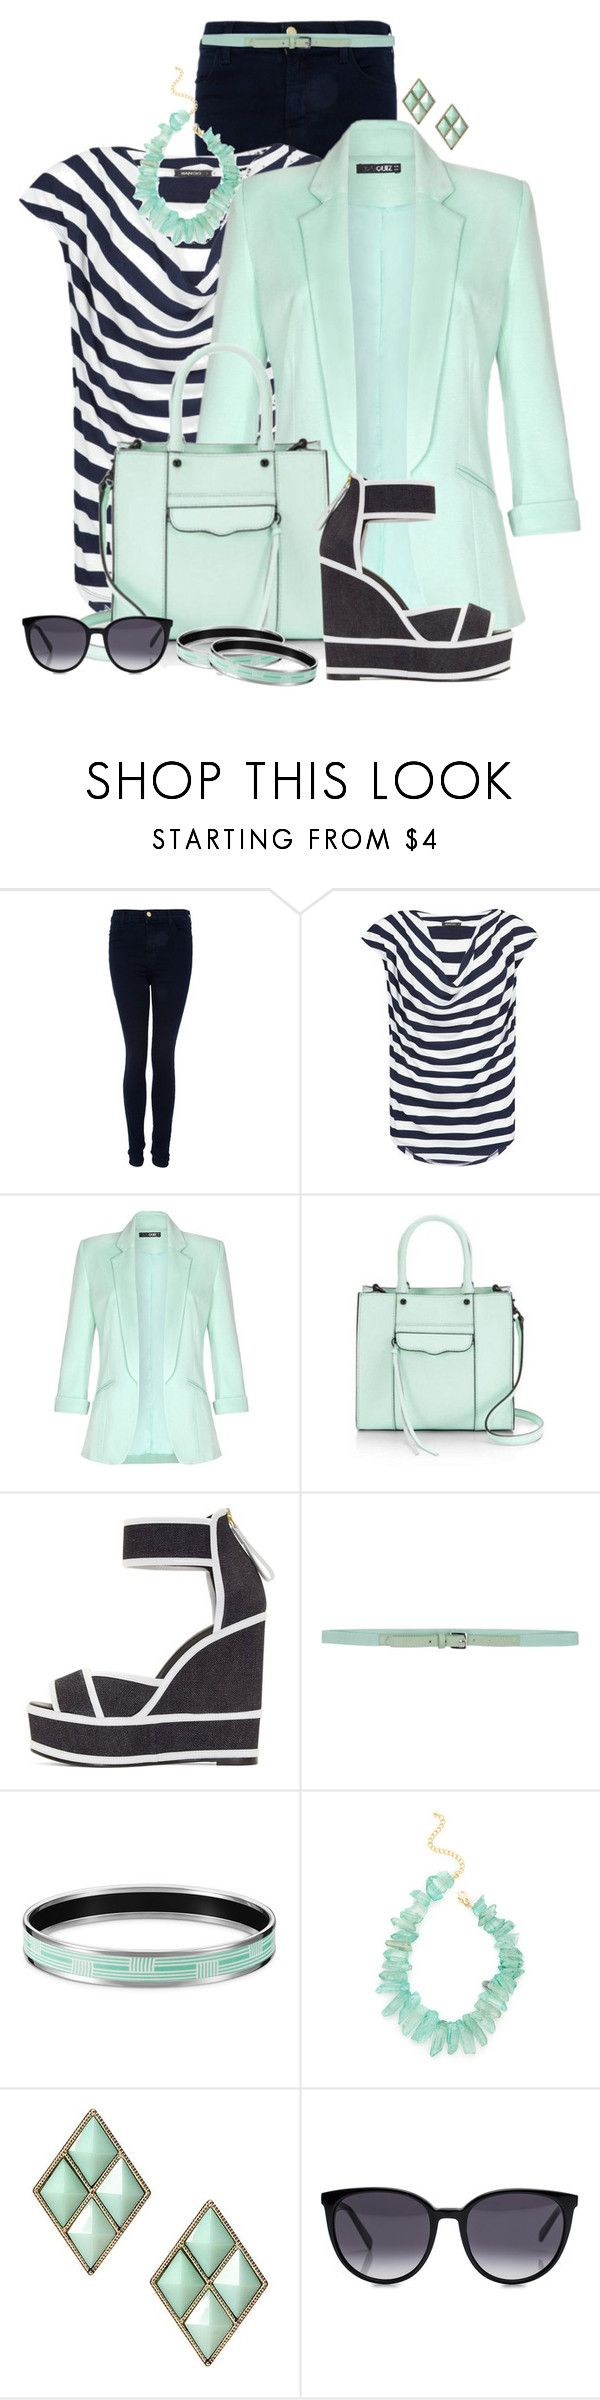 """Navy Stripes and Mint Blazer"" by cathy0402 ❤ liked on Polyvore featuring J Brand, MANGO, Quiz, Pierre Hardy, malo, Kenneth Jay Lane and CÉLINE"